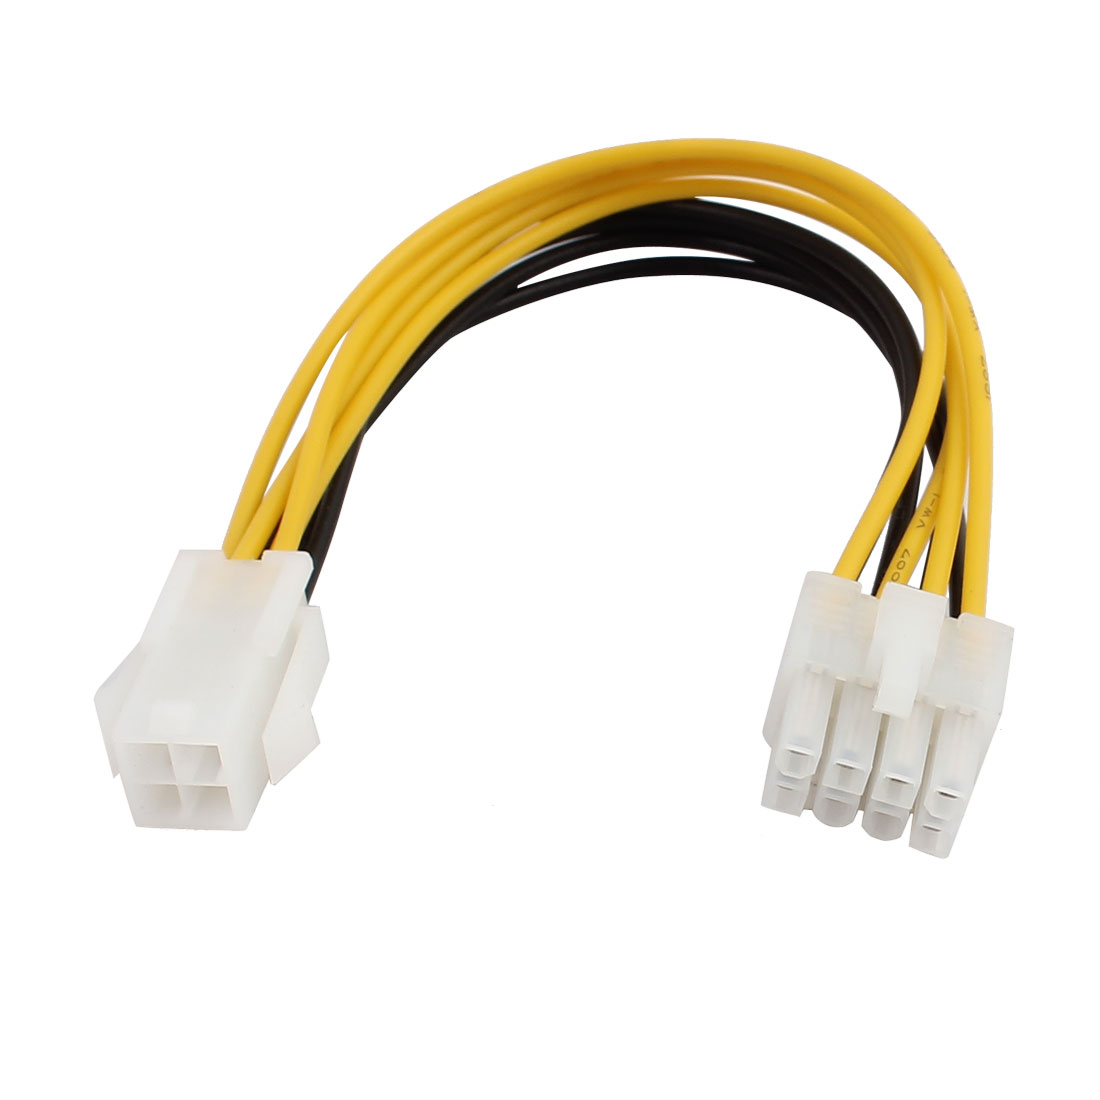 CPU Power Extension Cable 4-Pin to 8-Pin ATX Motherboard